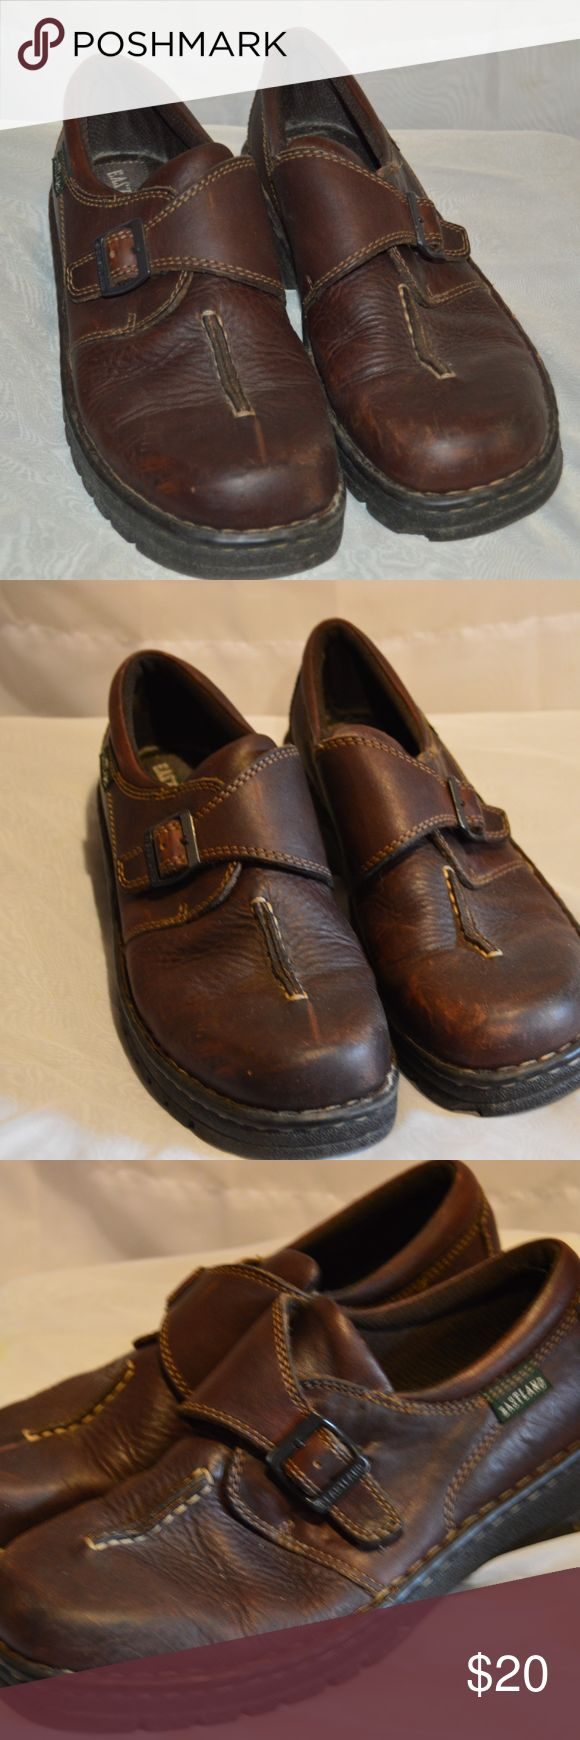 Eastland leather shoes Great condition Eastland Shoes Flats & Loafers